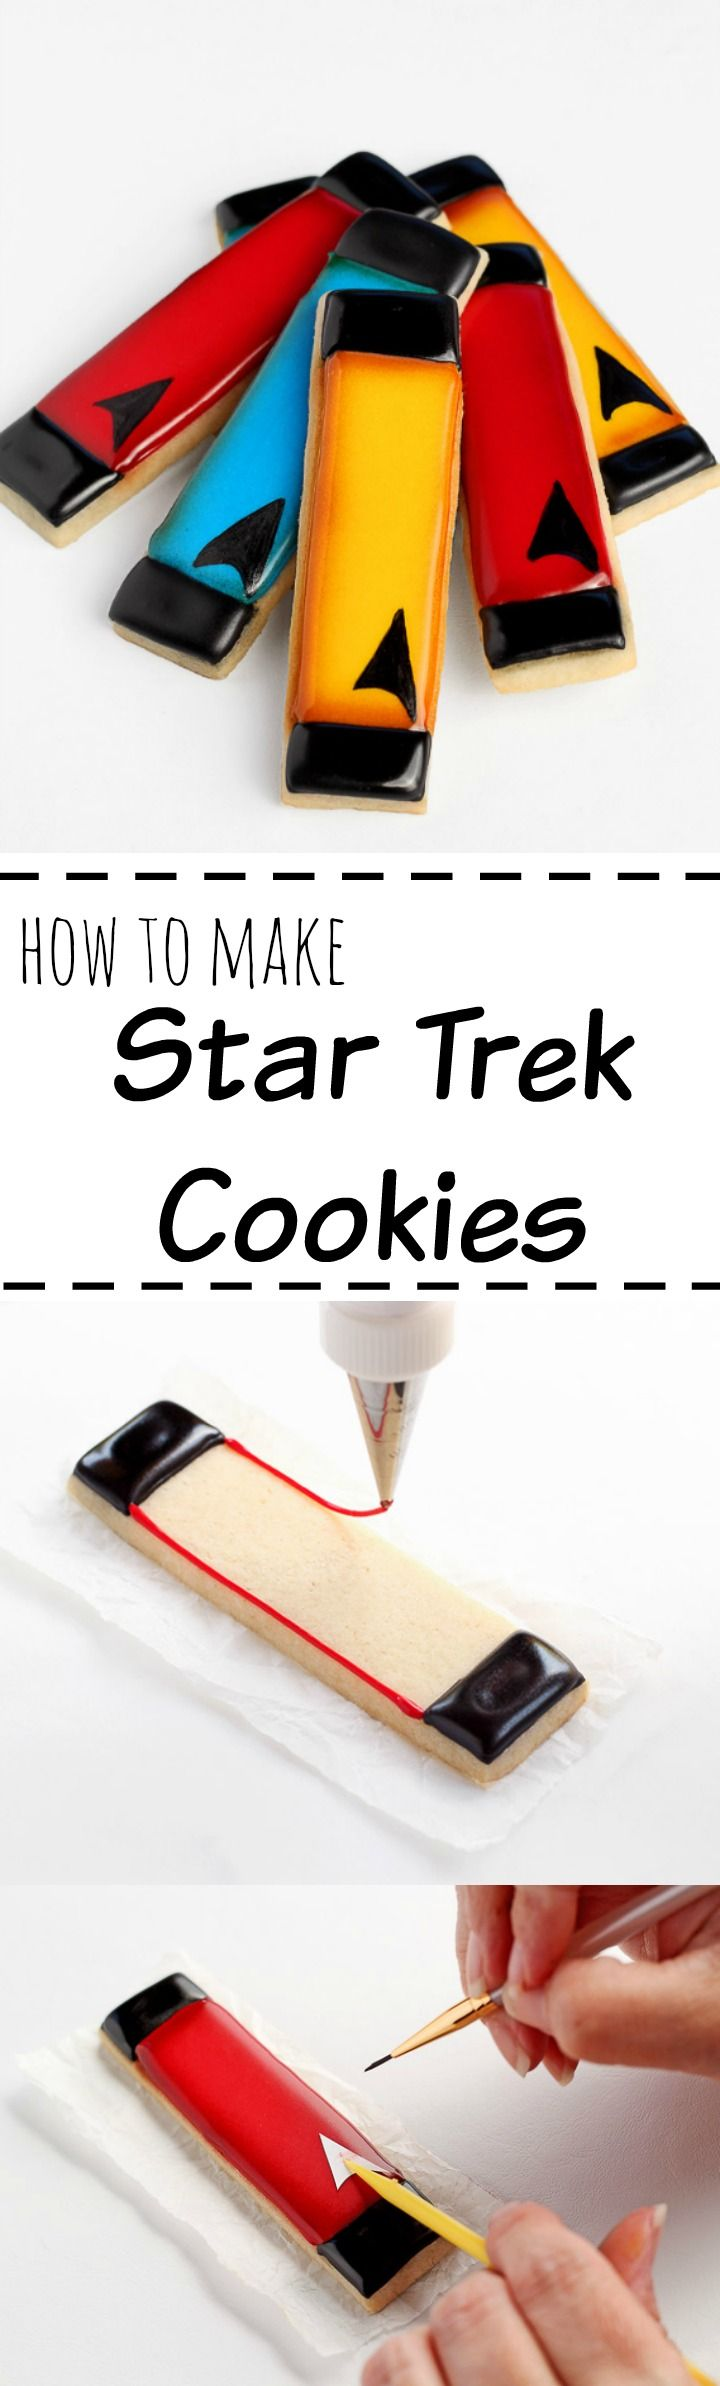 How to Make Simple Star Trek Cookies with Video